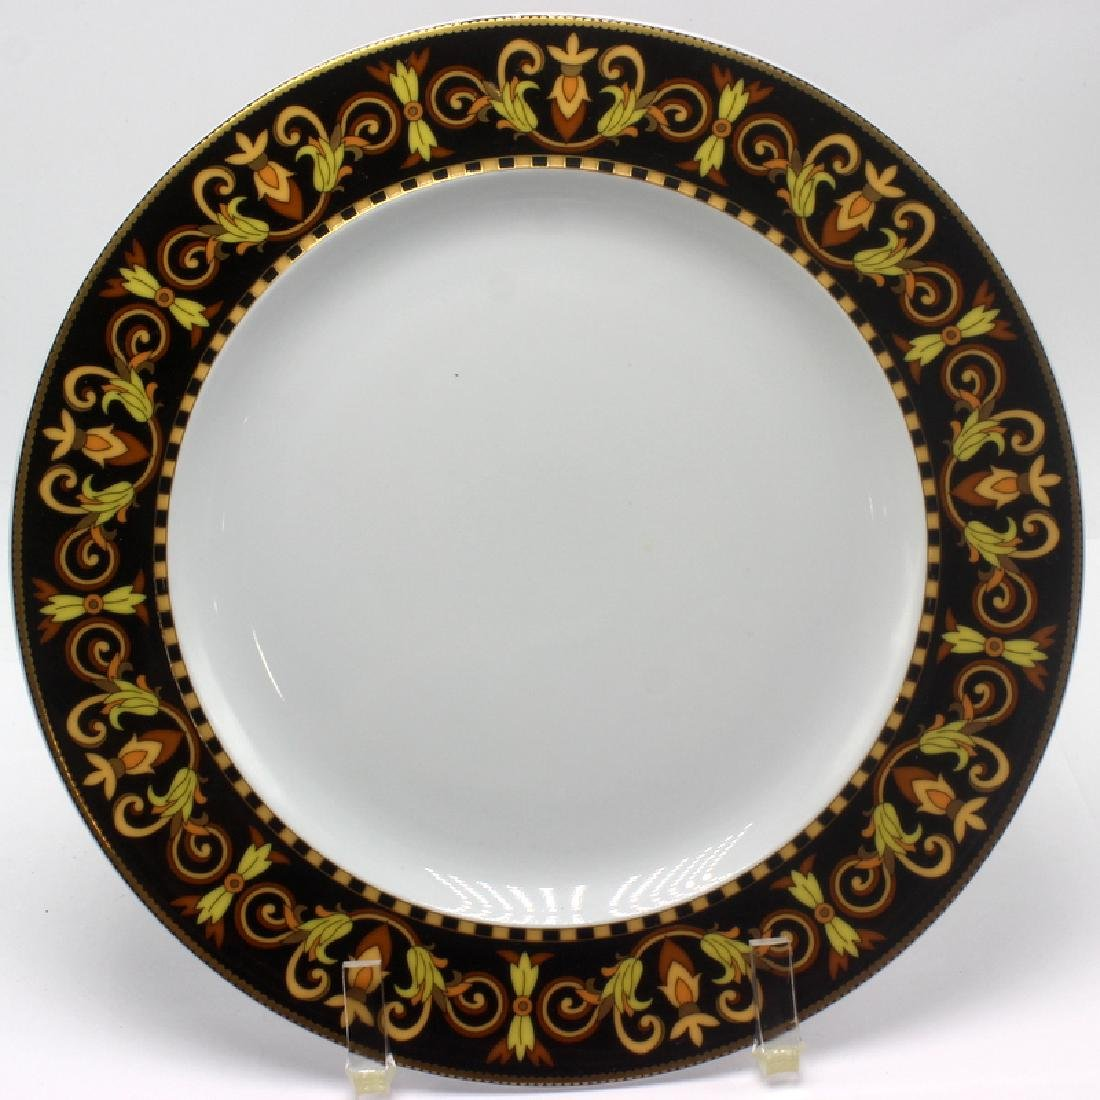 Rosenthal Versace Barocco (6) Luncheon Plates